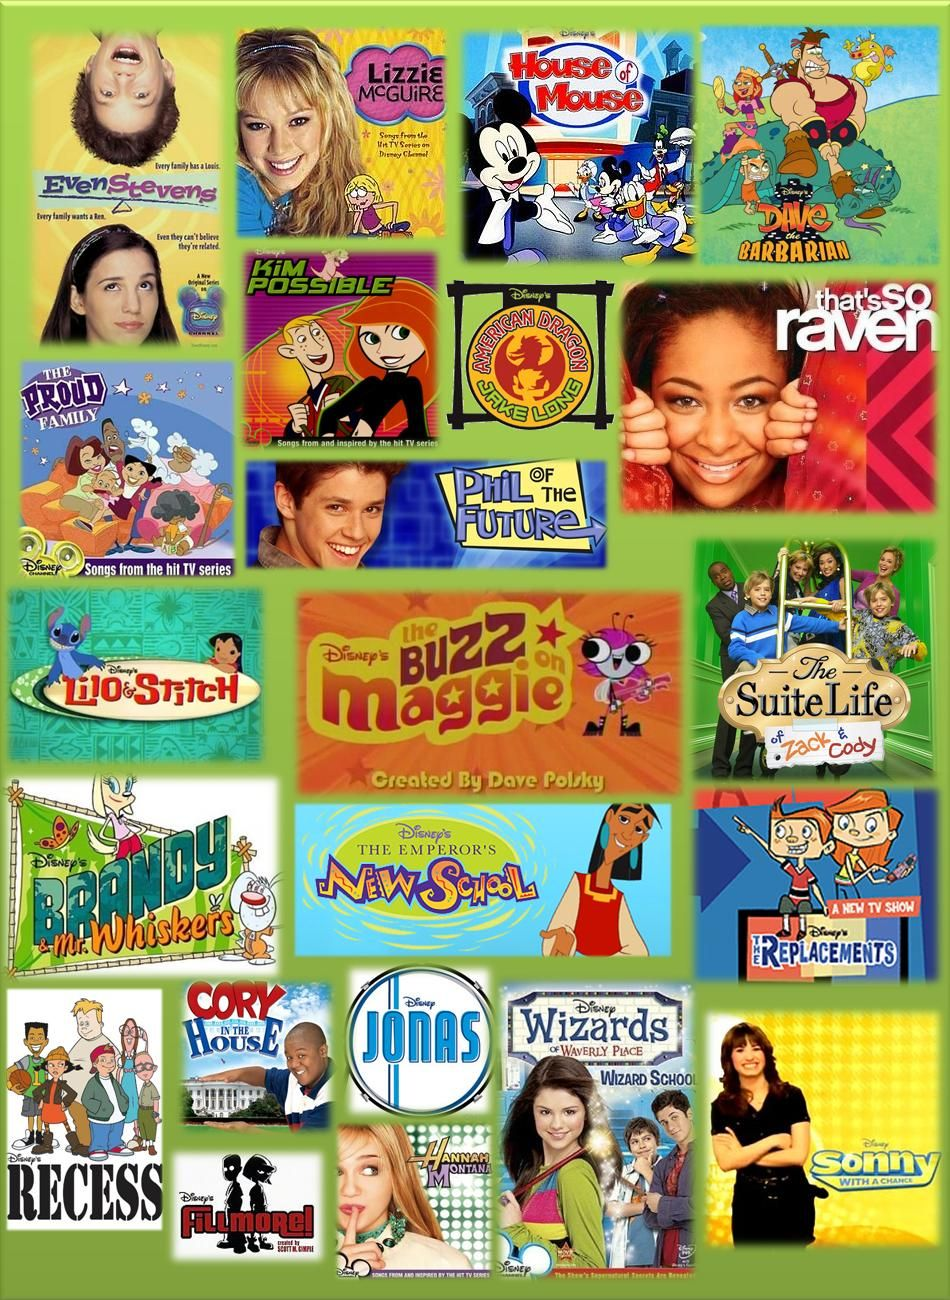 repin if you know these shows かわいい old disney old disney